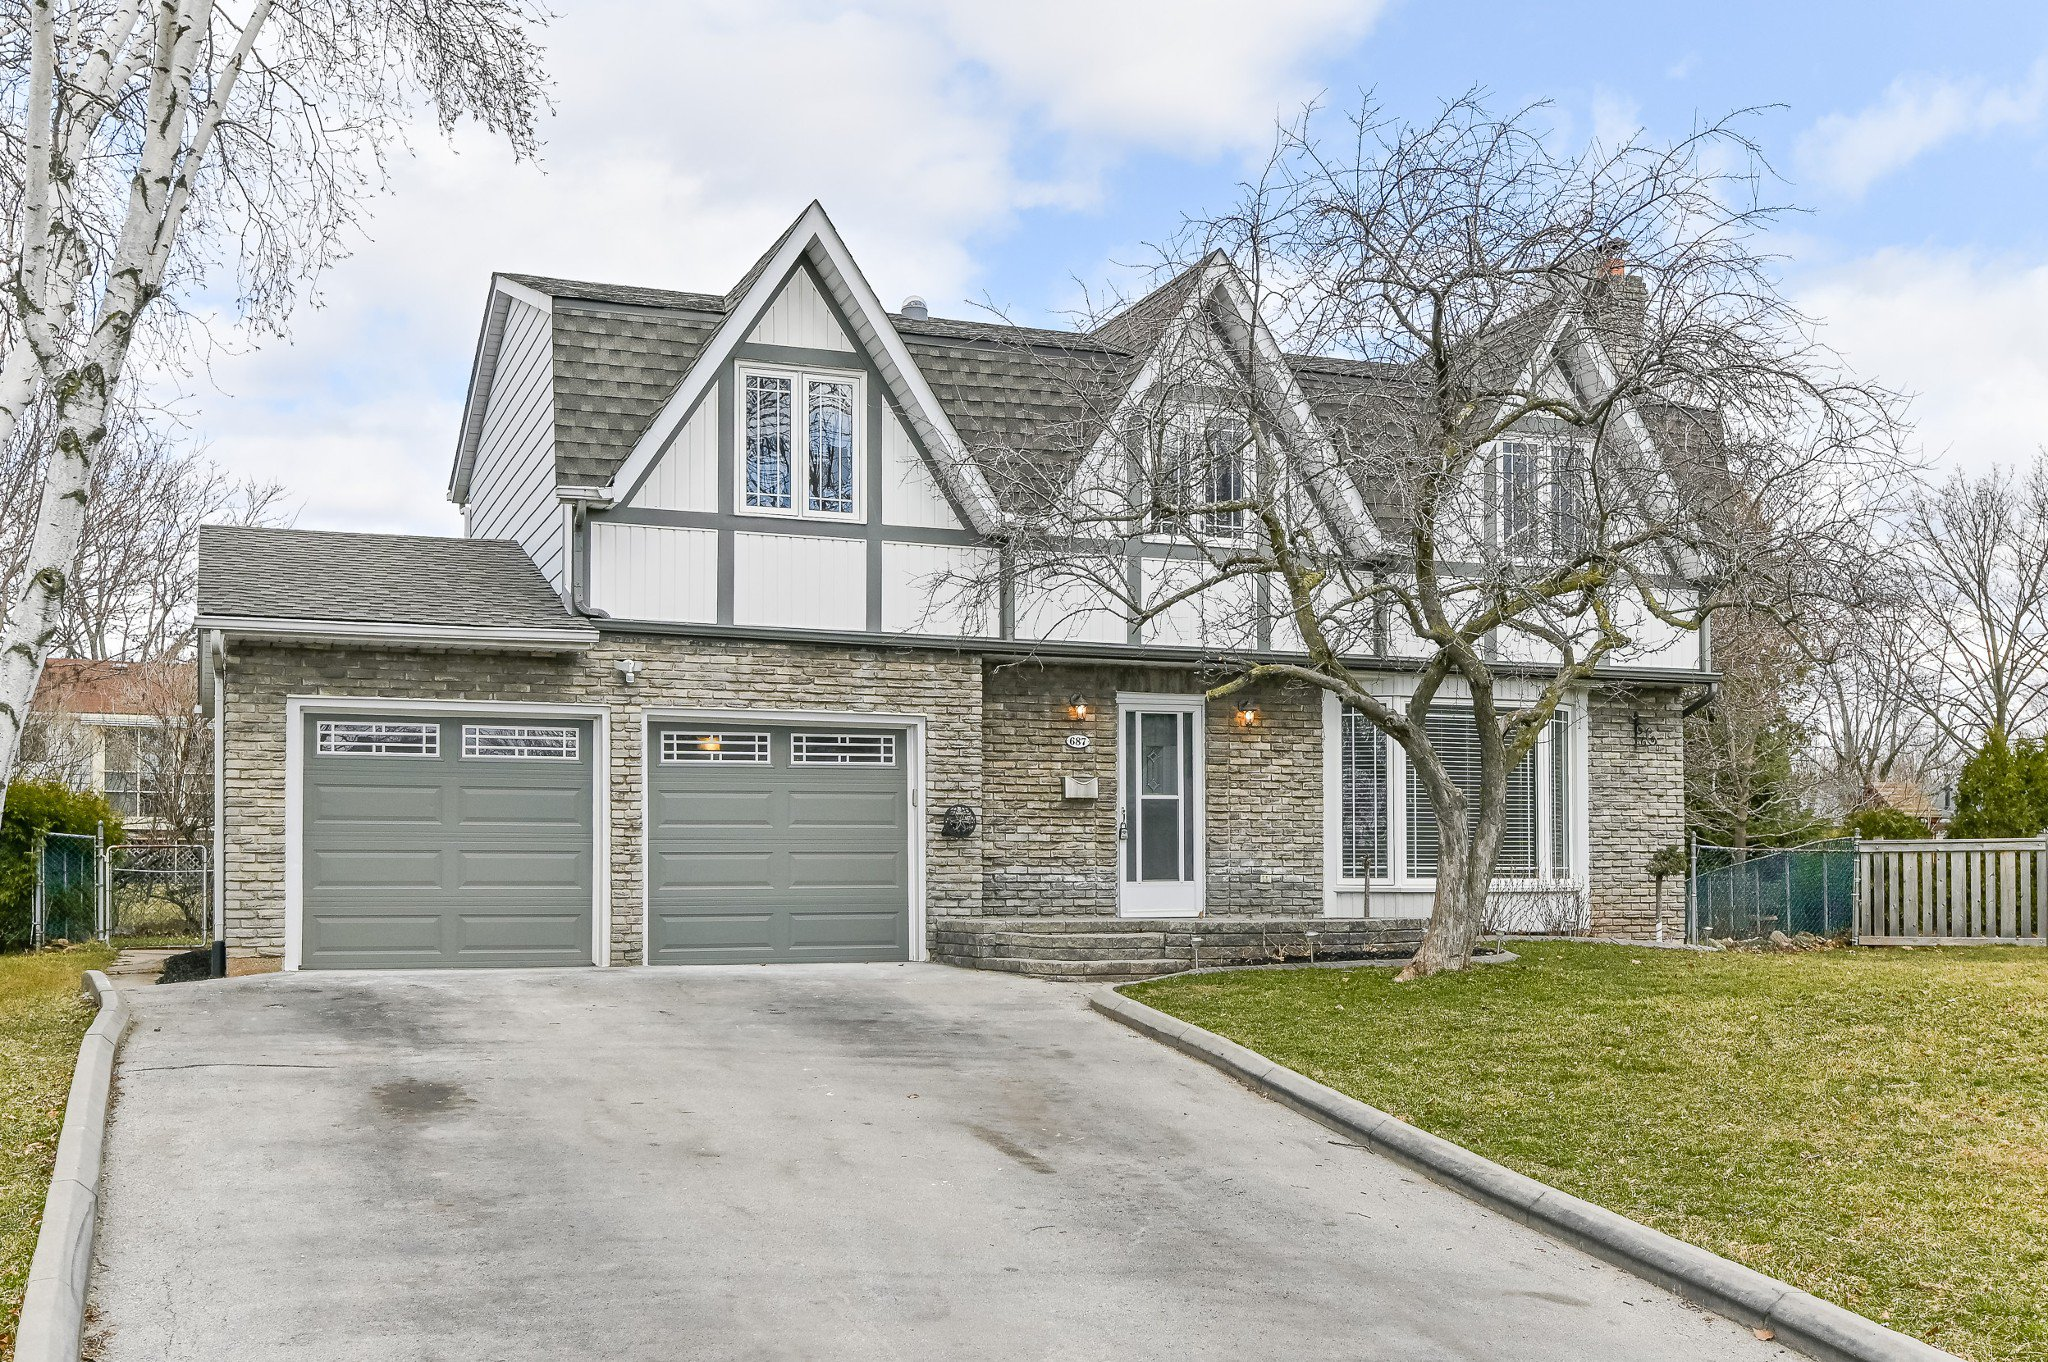 Main Photo: 687 Demaris Court in Burlington: House for sale : MLS®# H4052206